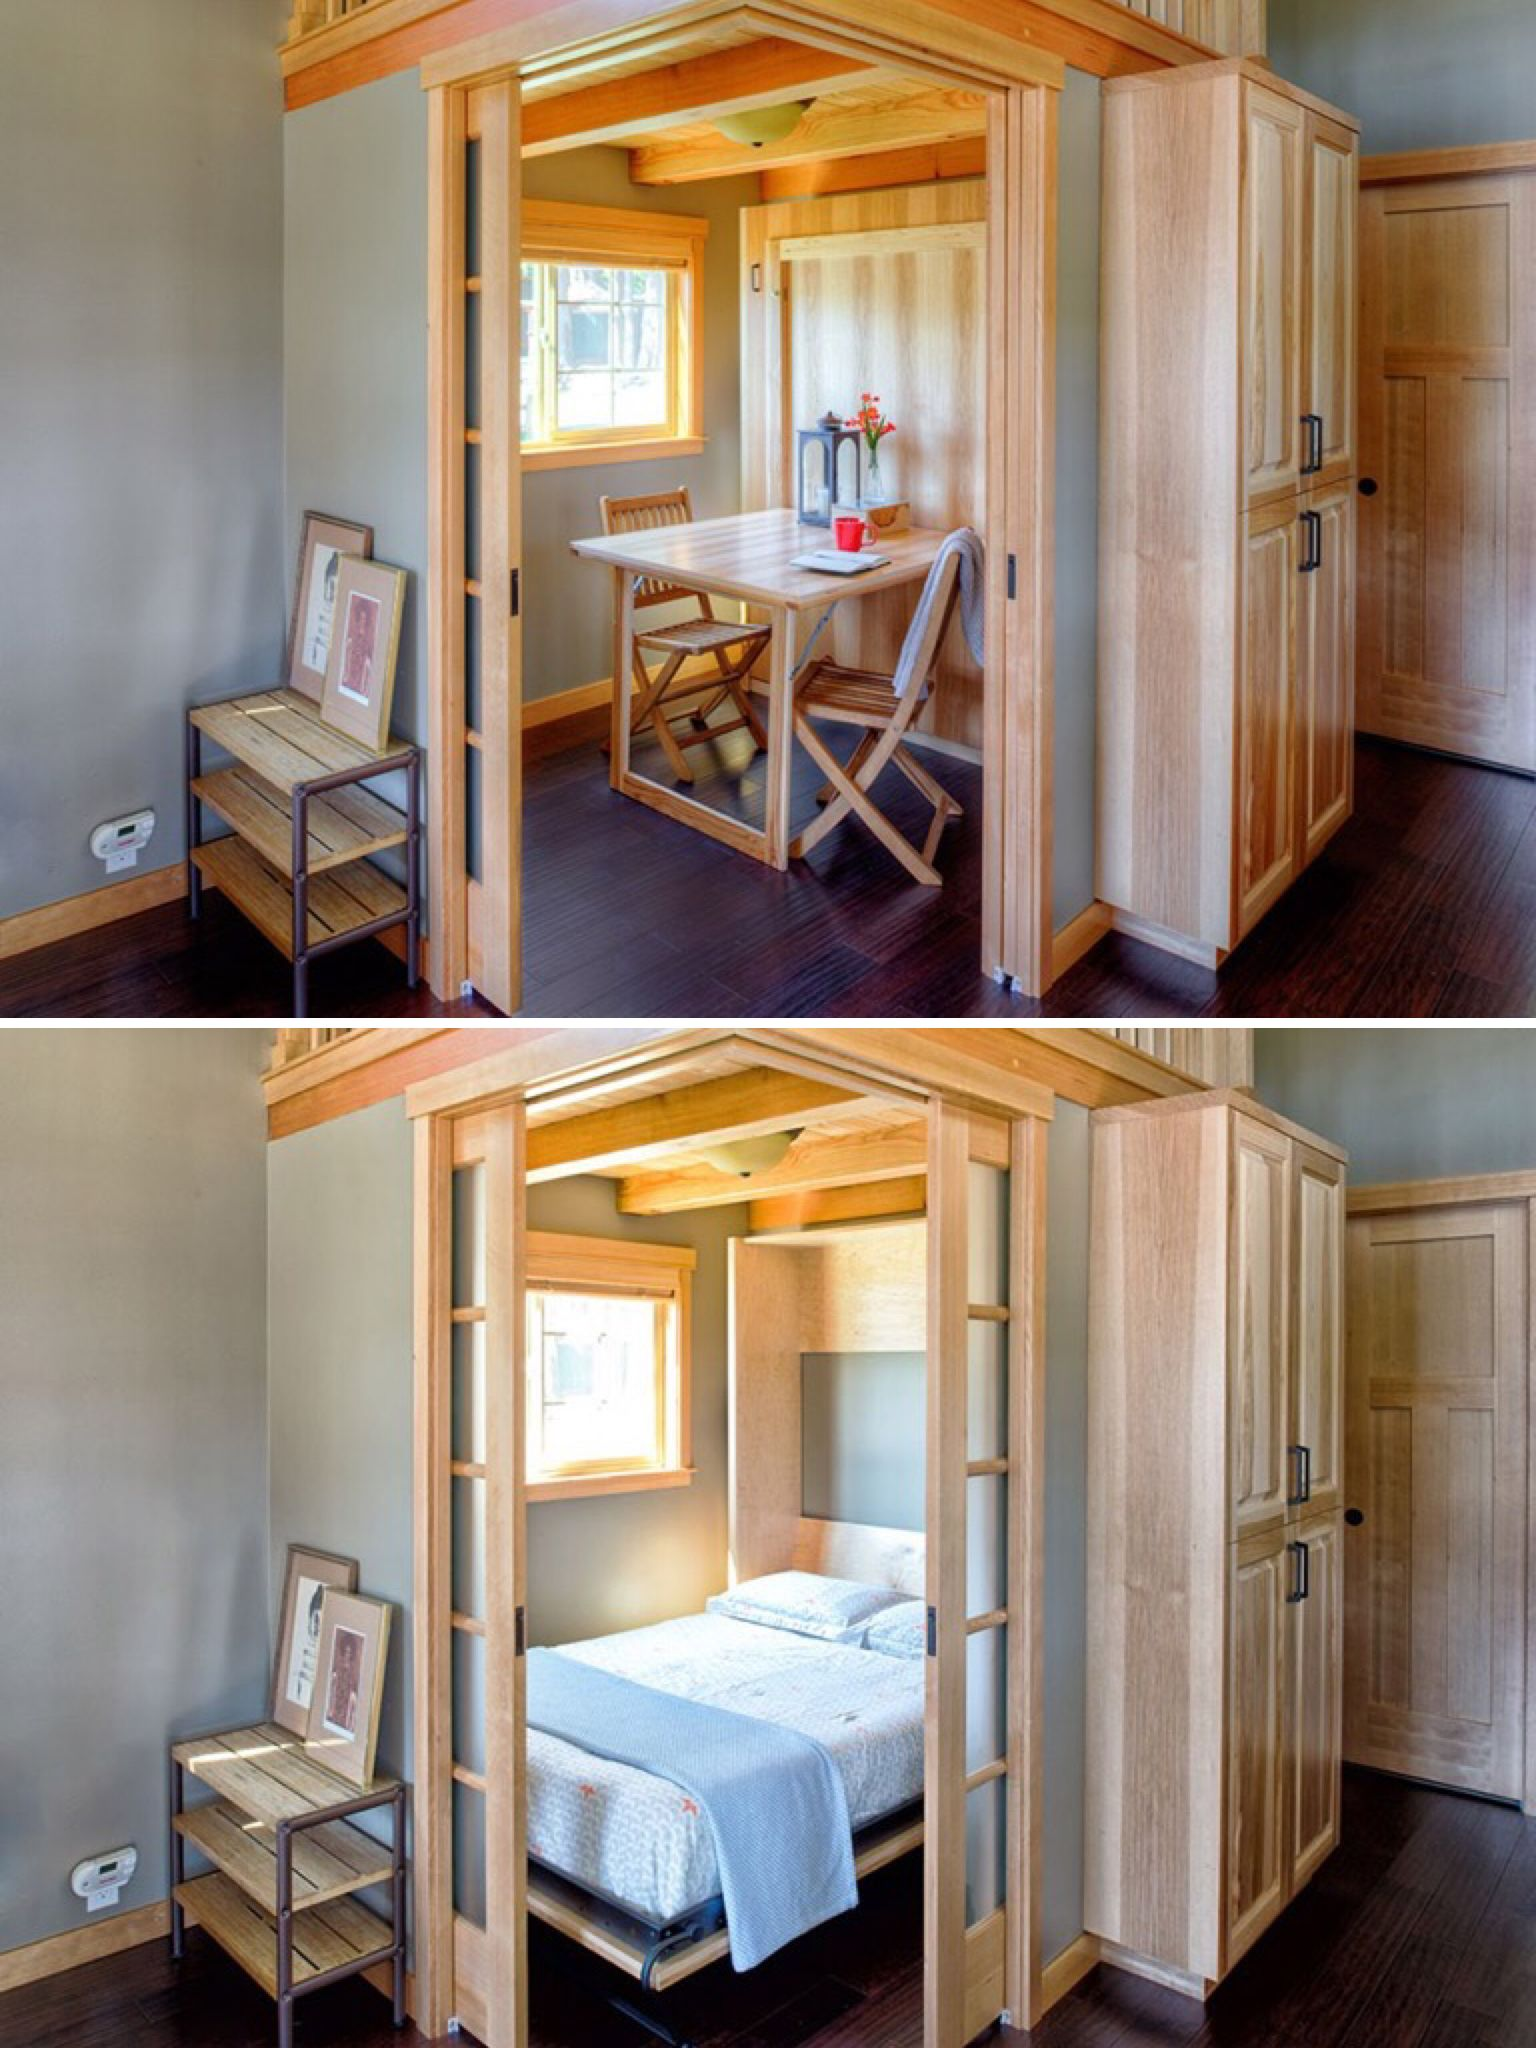 Murphy bed fold up table in  sq ft park model home bellingham wa and check out those pocket doors wildwood tiny house swoon homes also down combo future pinterest rh